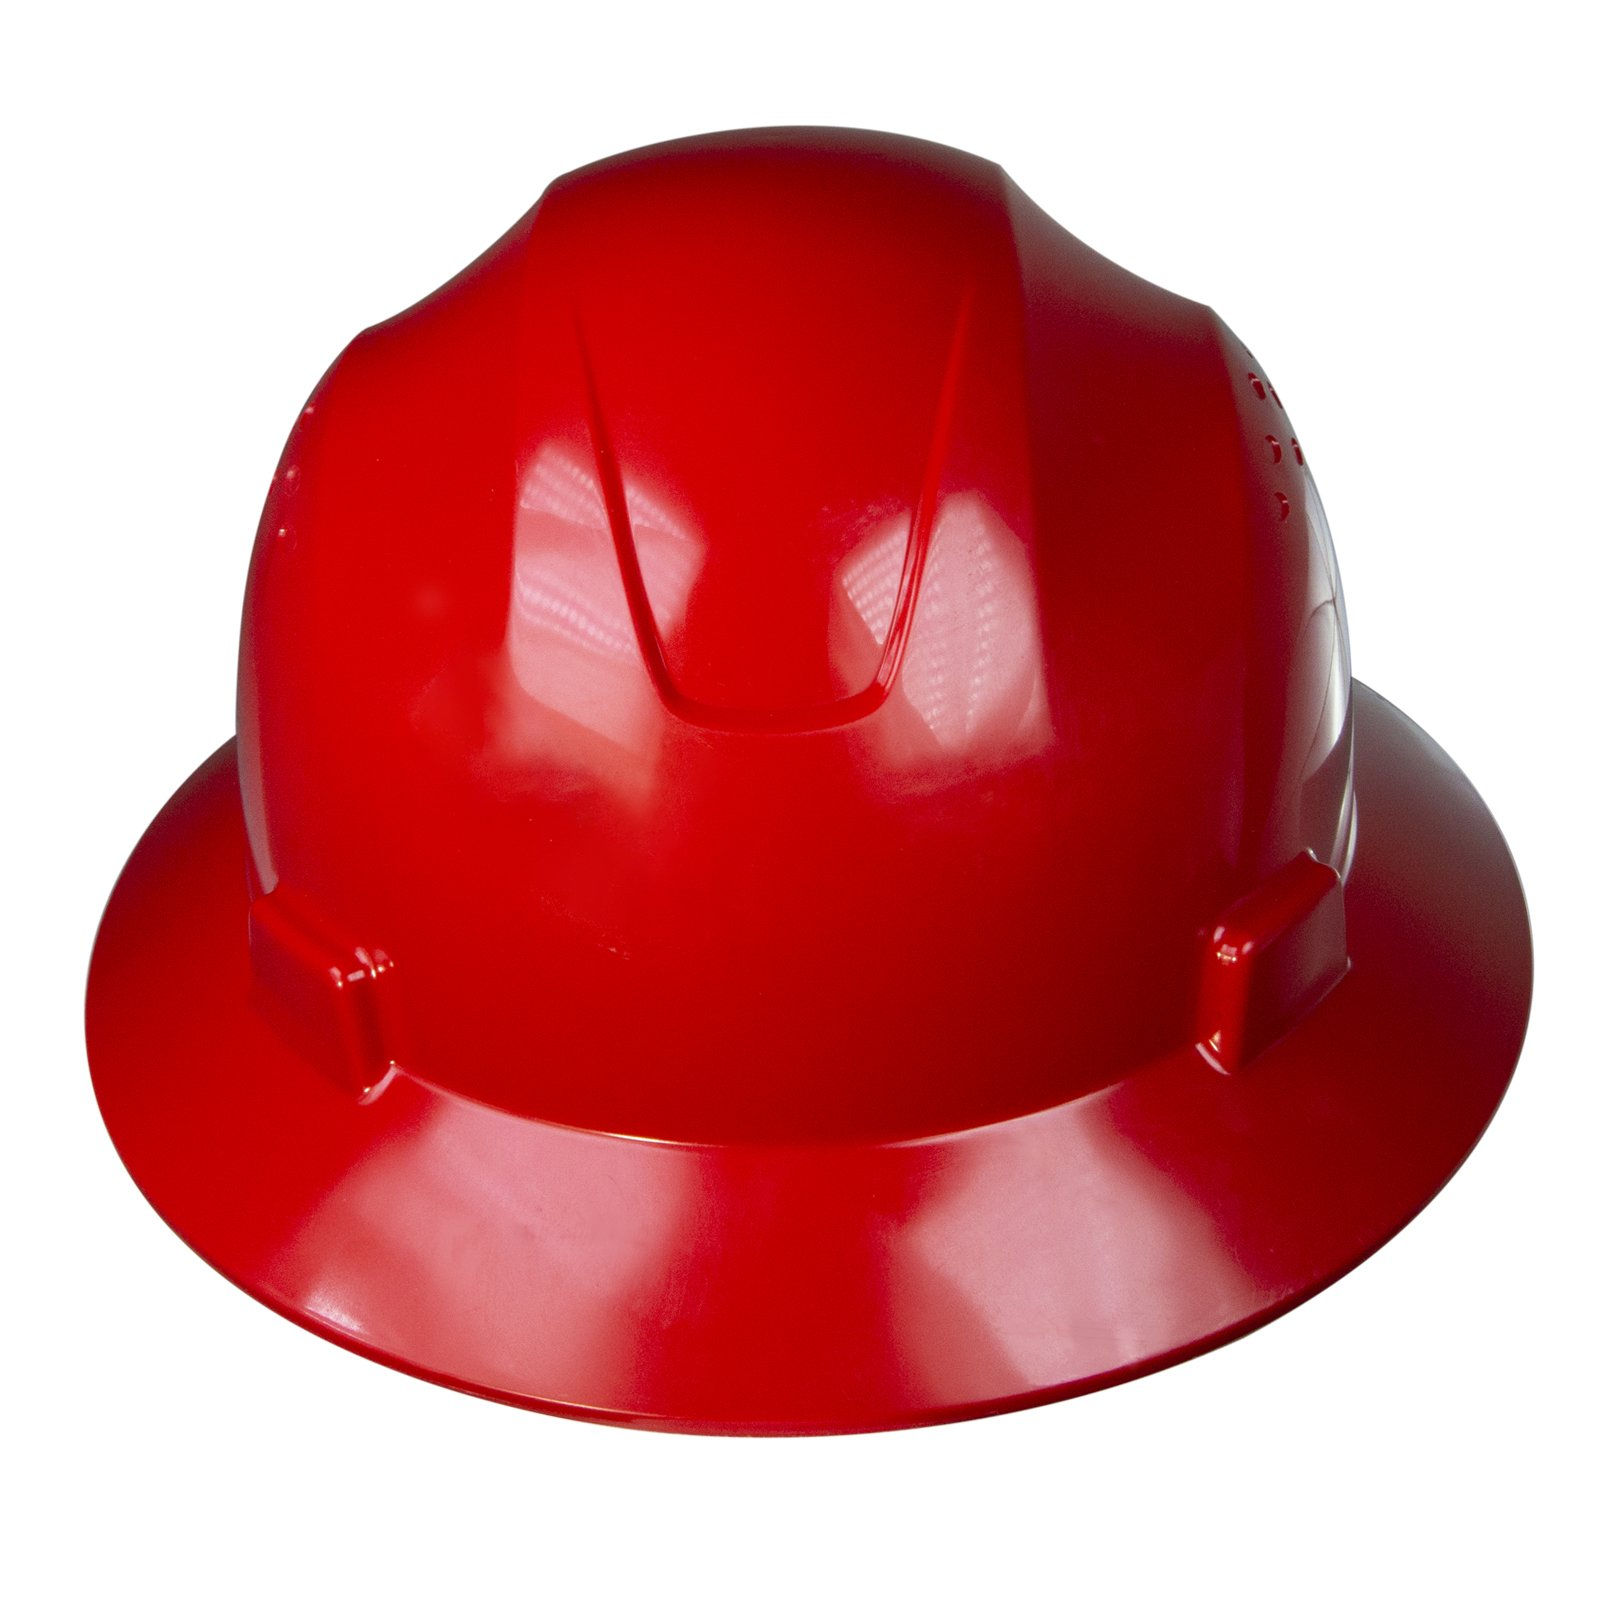 PPE By JORESTECH - HDPE Full Brim Style Hard Hat Helmet w/Adjustable Ratchet Suspension For Work, Home, and General Headwear Protection ANSI Z89.1-14 Compliant (Red)